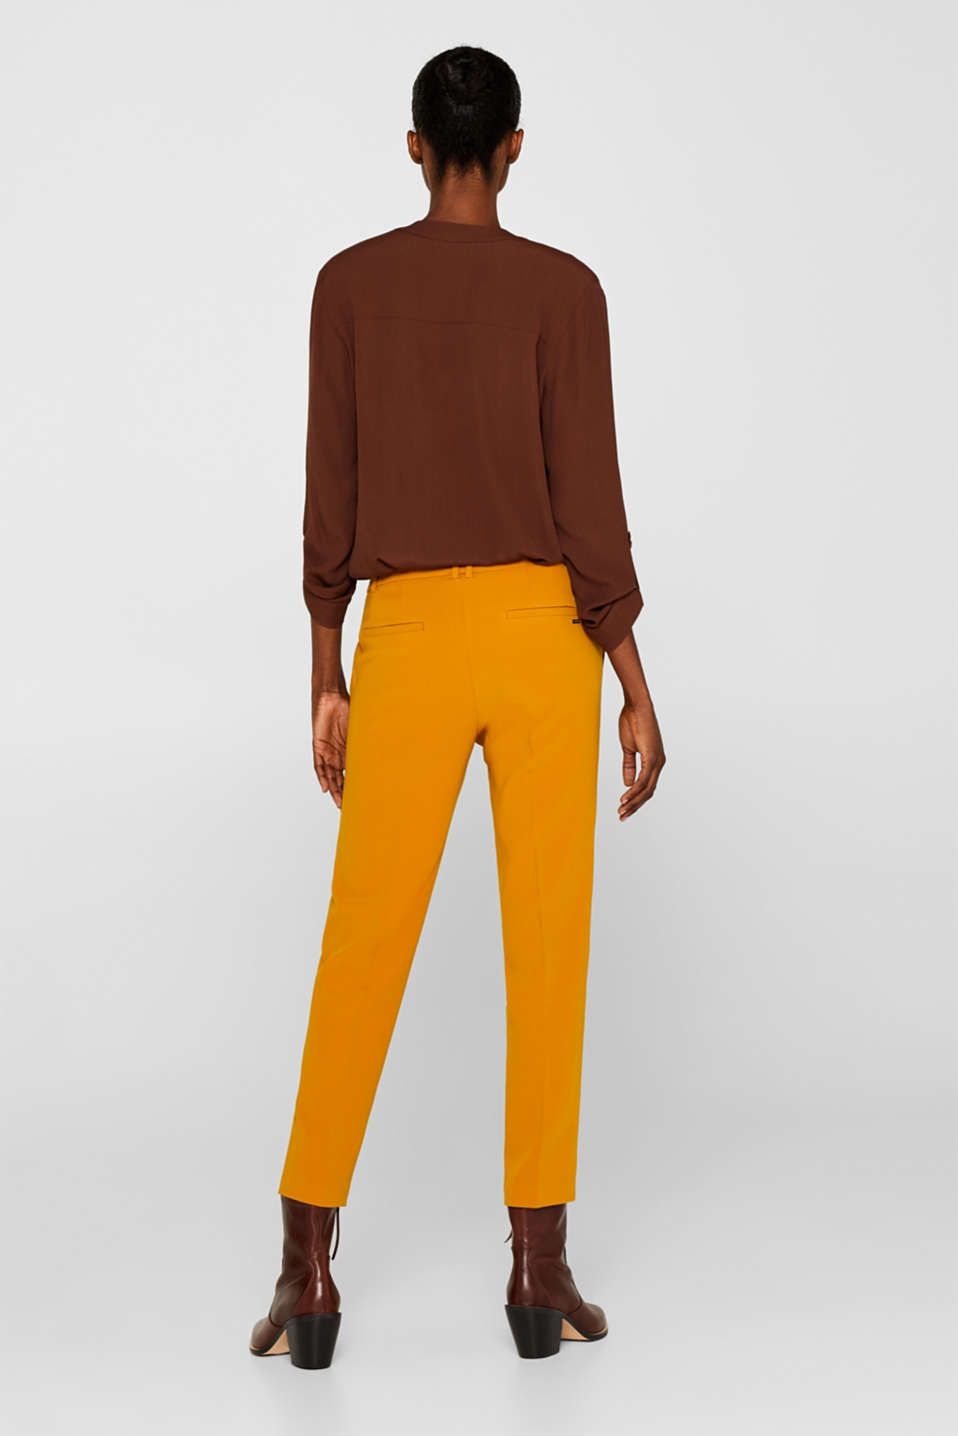 TAILORING Mix + Match stretch trousers, AMBER YELLOW, detail image number 3